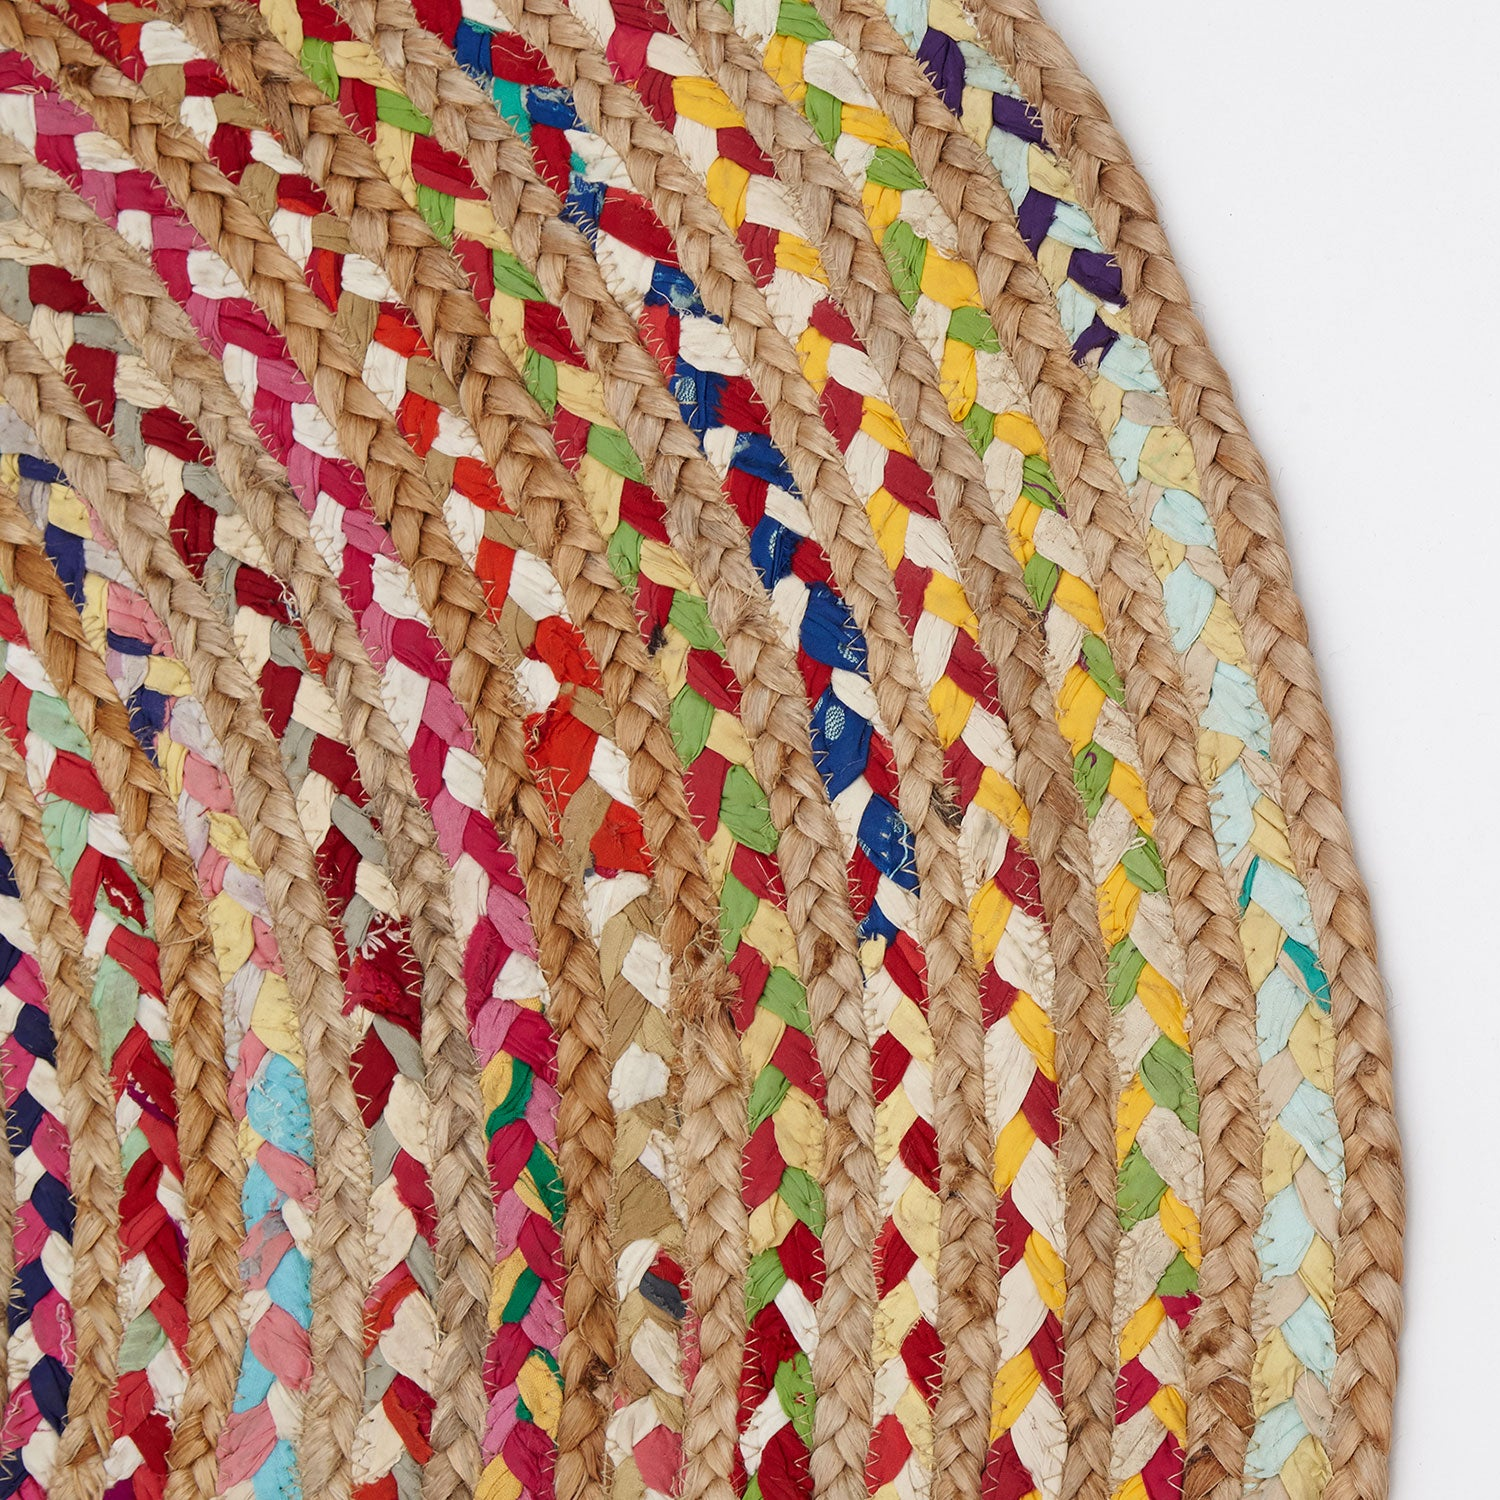 Fusion Handwoven Round Natural Jute Rug